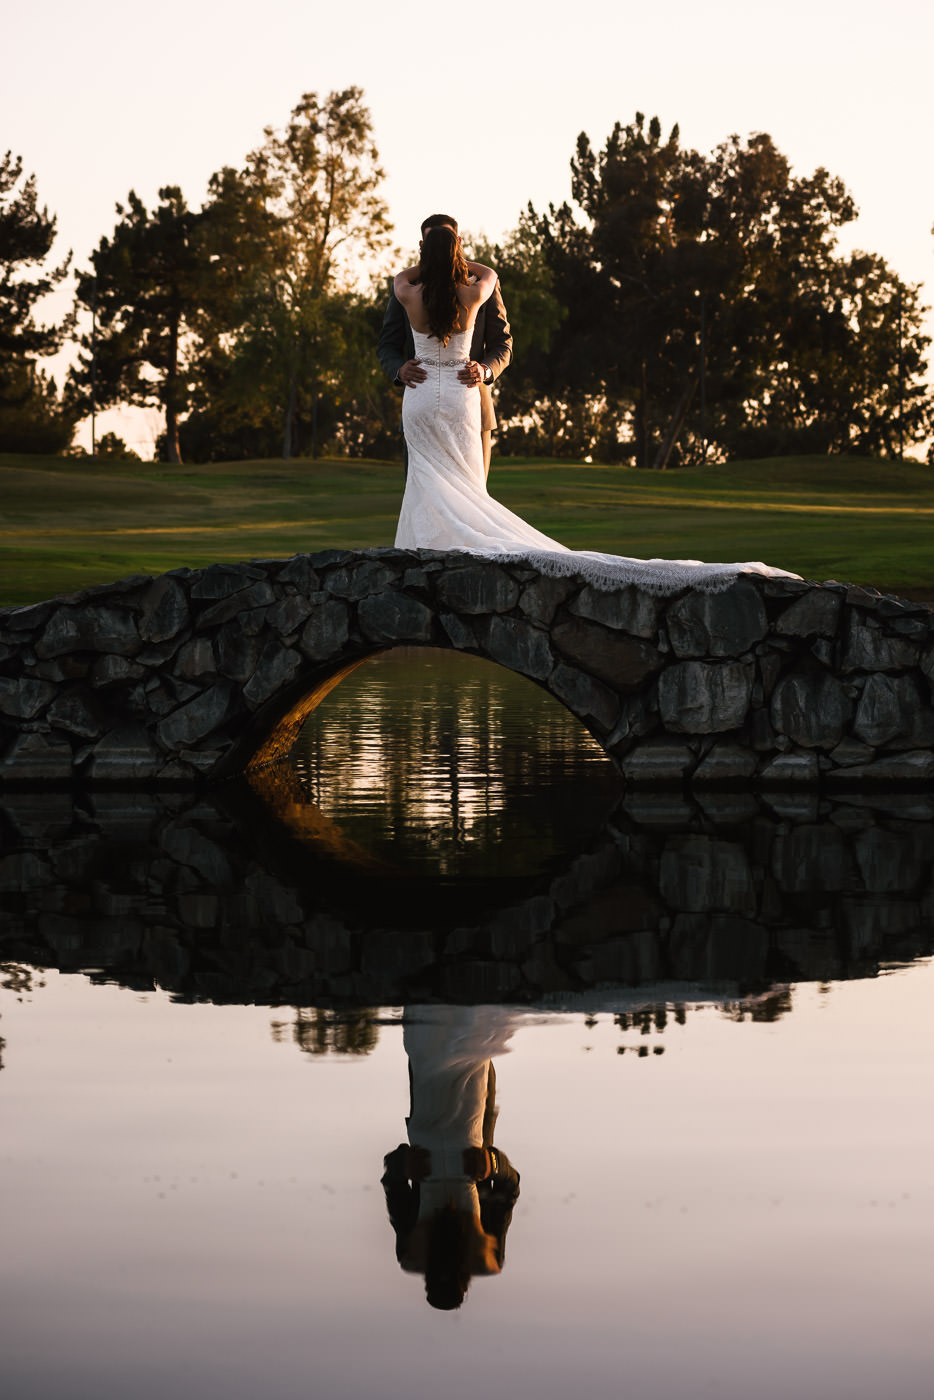 Romantic wedding photography on the stone bridge of the Alta Vista Country Club.